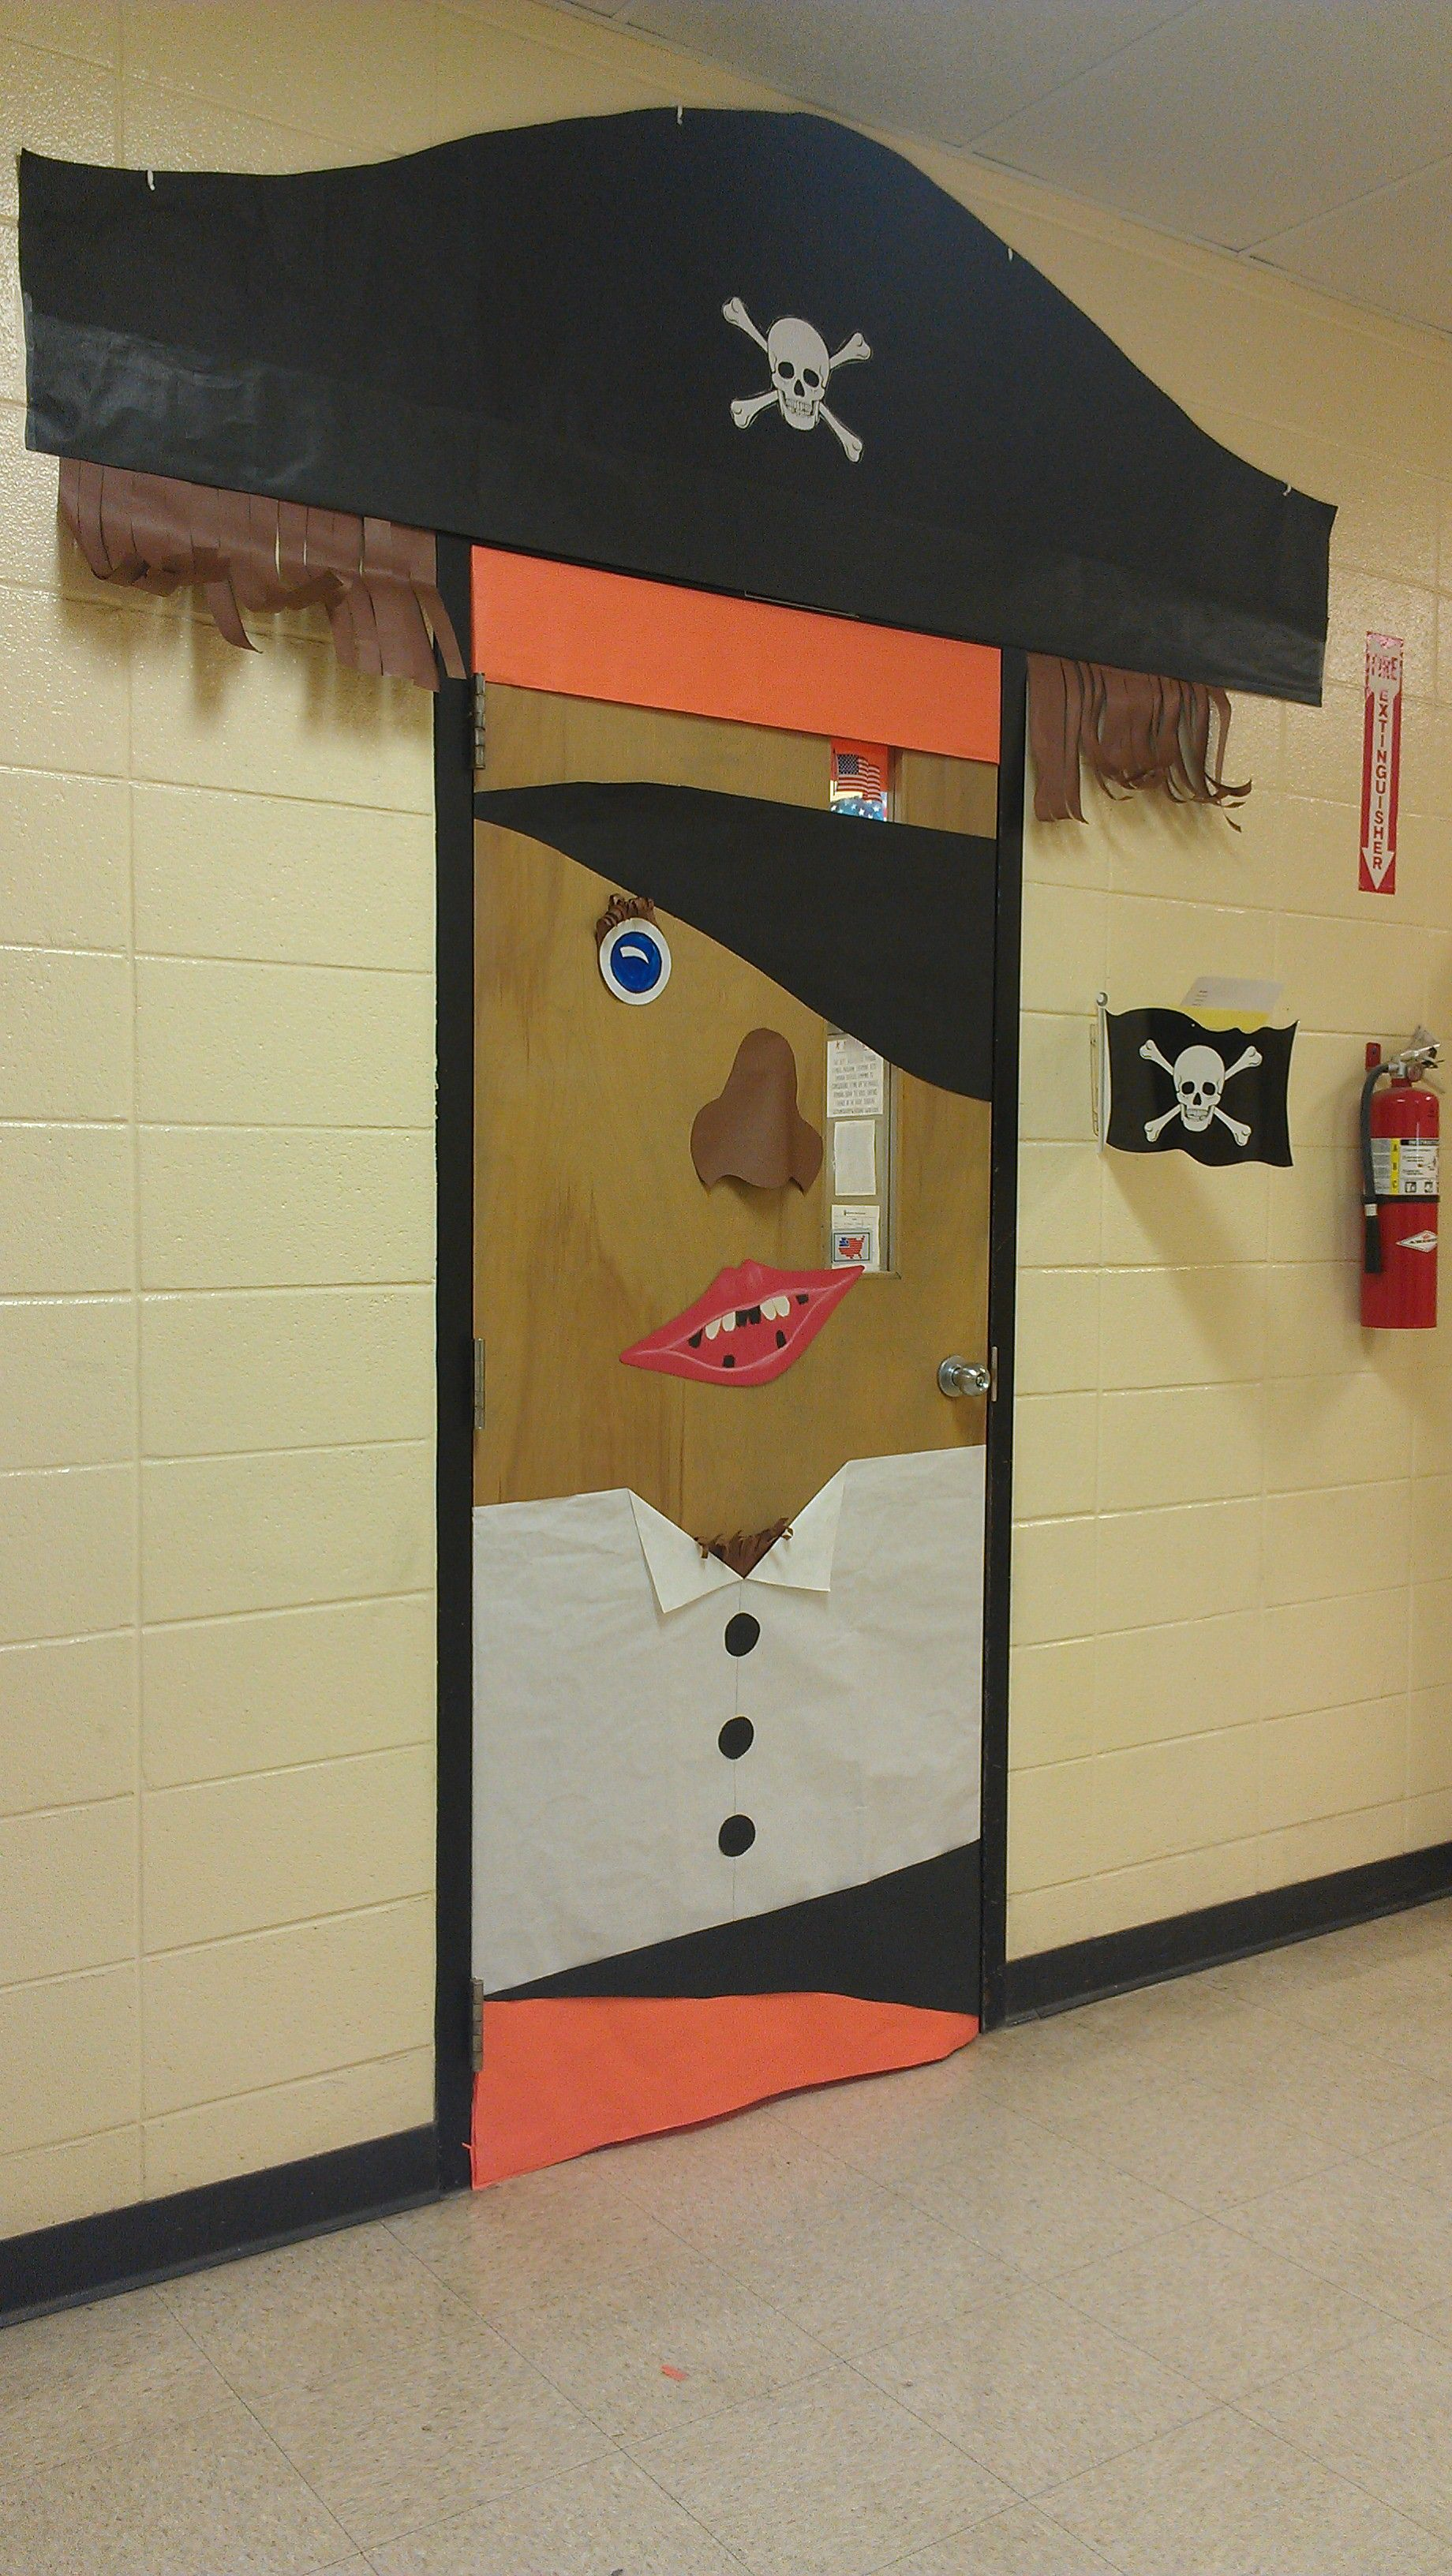 Pirate Themed Door Decoration To Go Along With A Pirate Themed